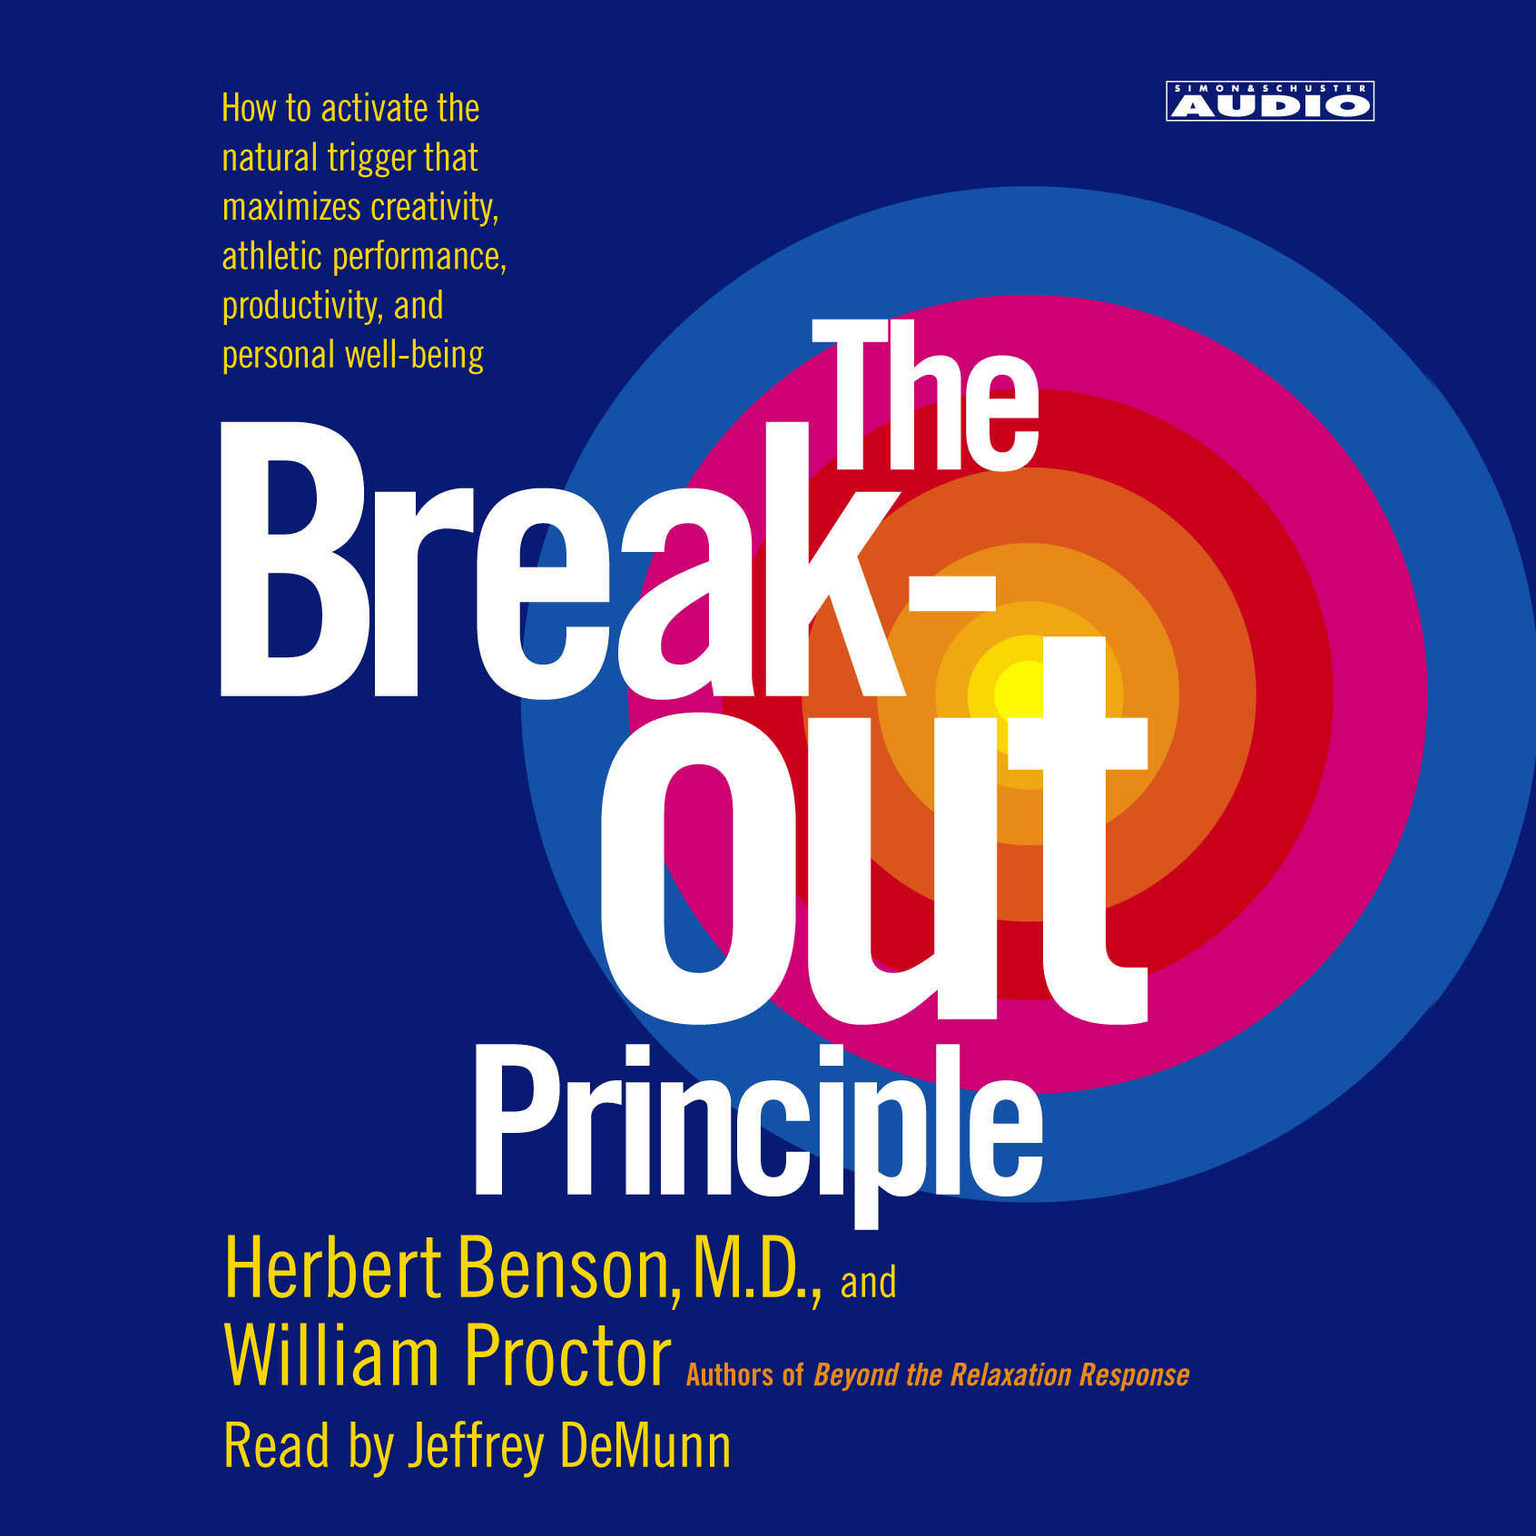 Printable The Breakout Principle: How to Activate the Natural Trigger That Maximizes Creativity, Athletic Performance, Productivity and Personal Well-Being Audiobook Cover Art